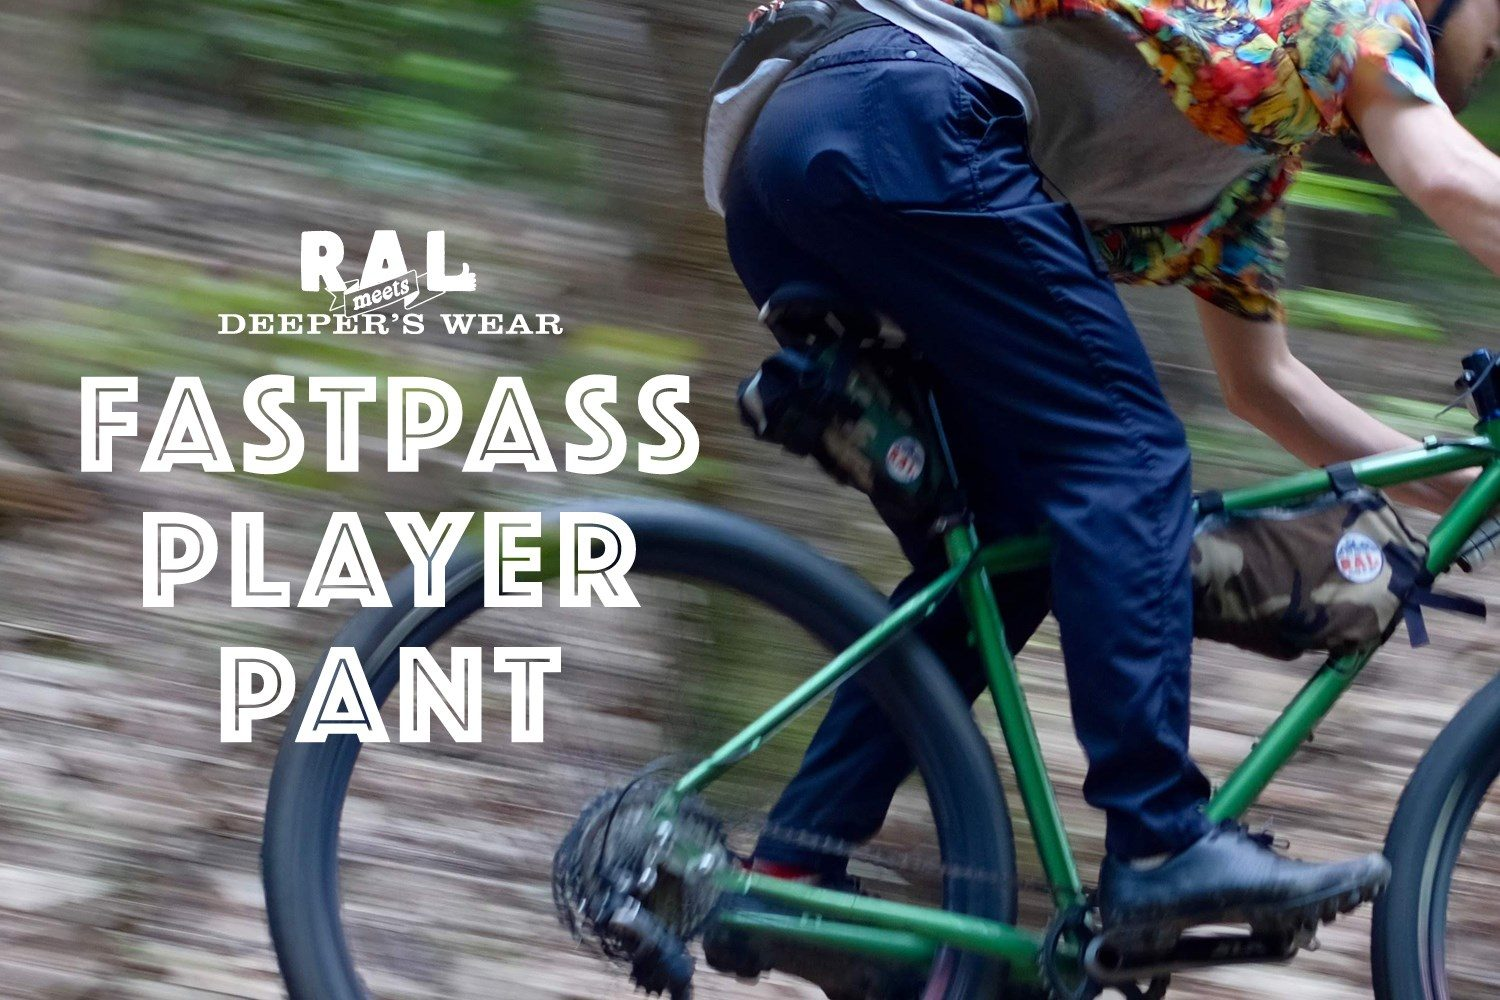 Fast Pass Player Pant